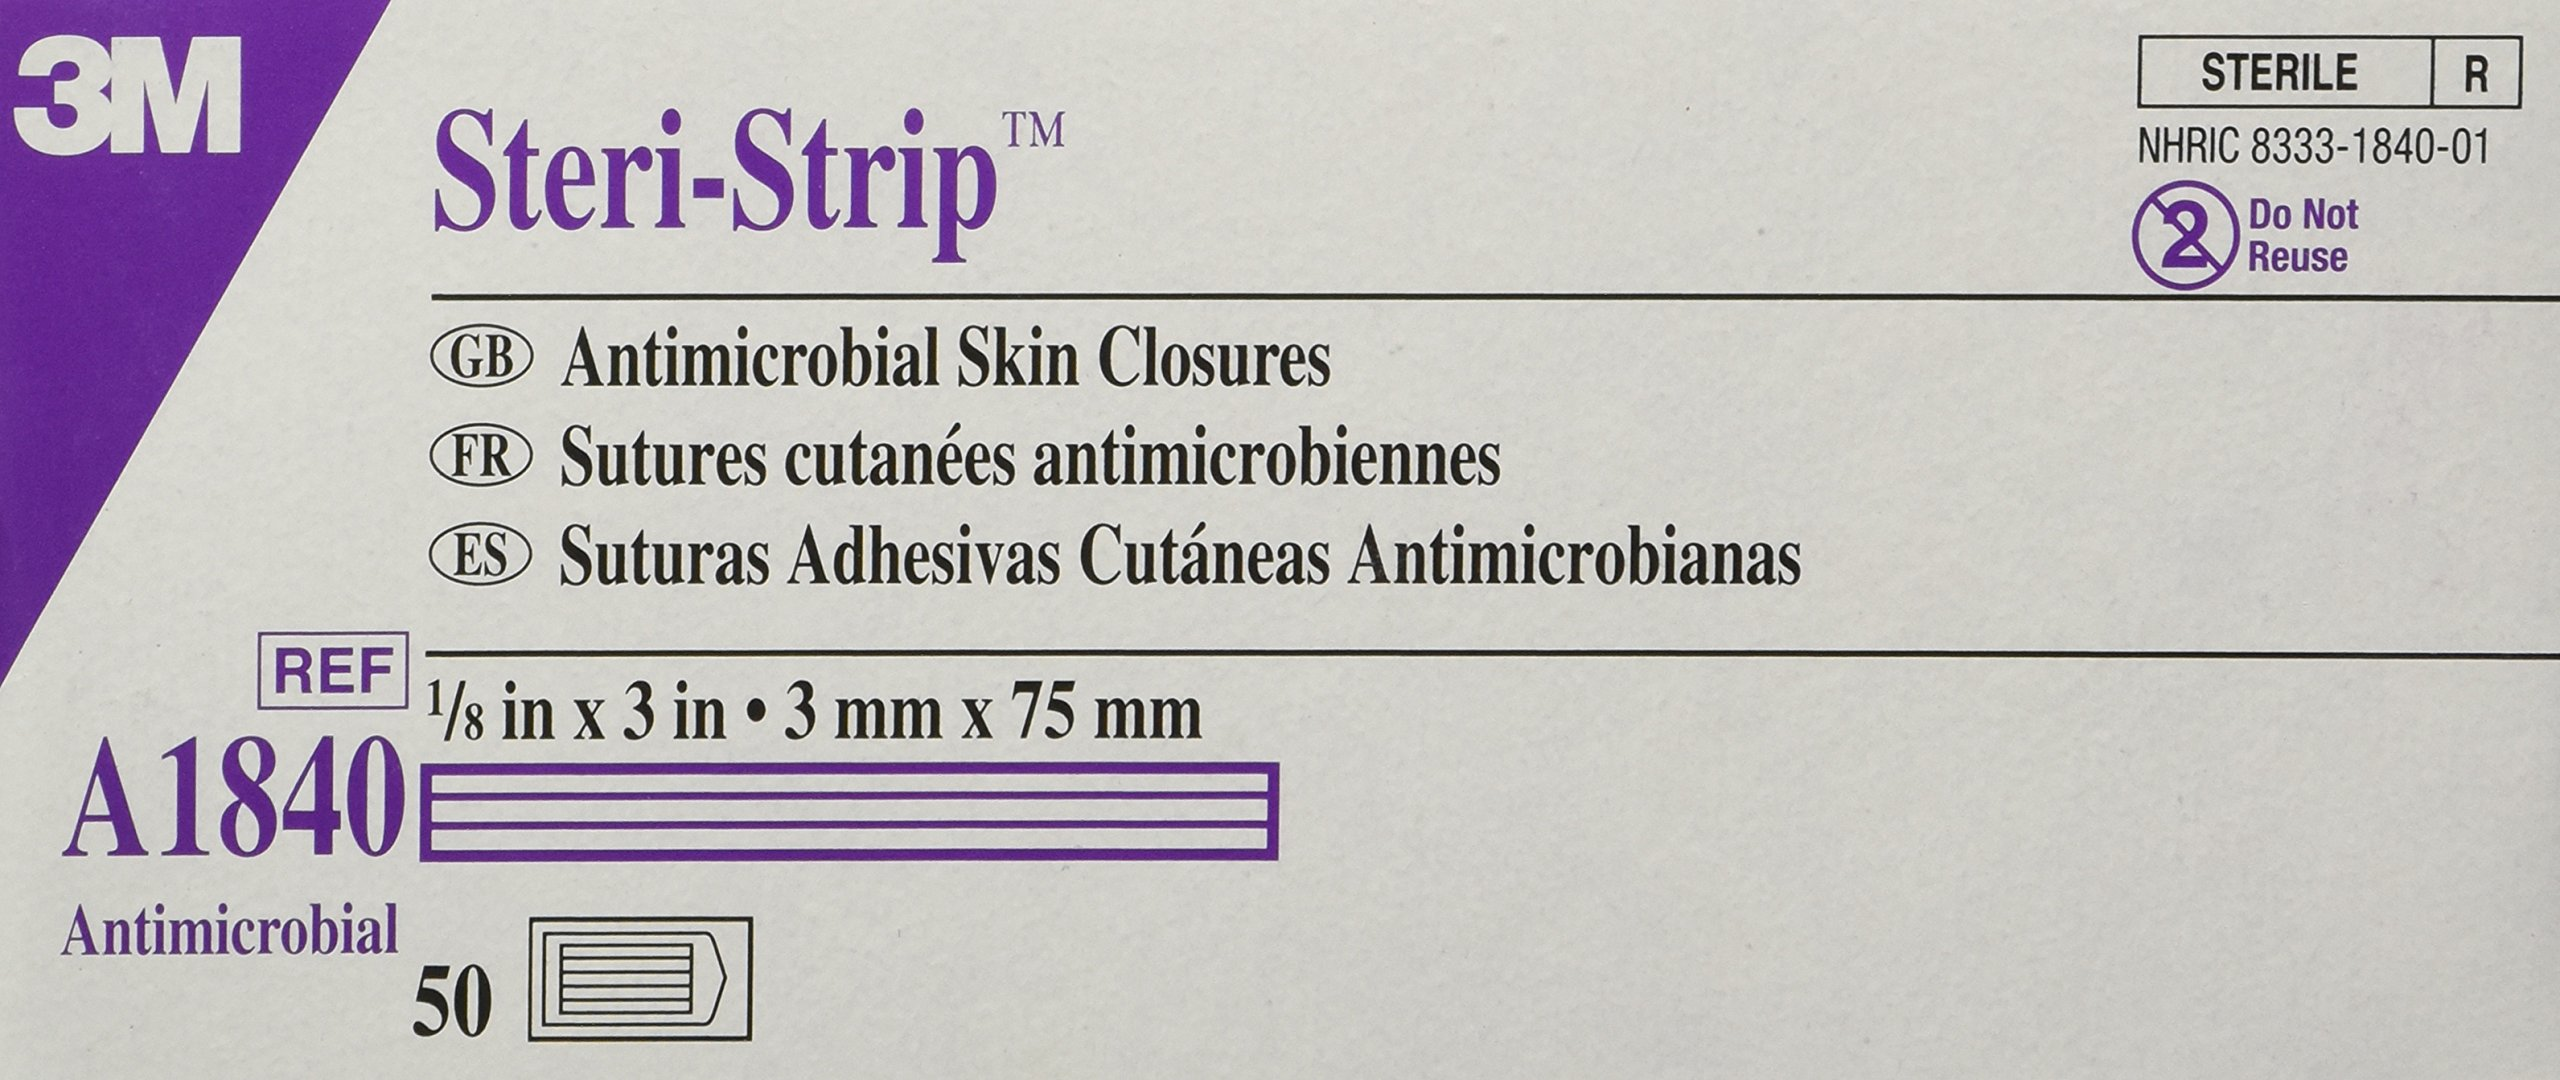 3M A1840 Steri-Strip Antimicrobial Skin Closures by 3M